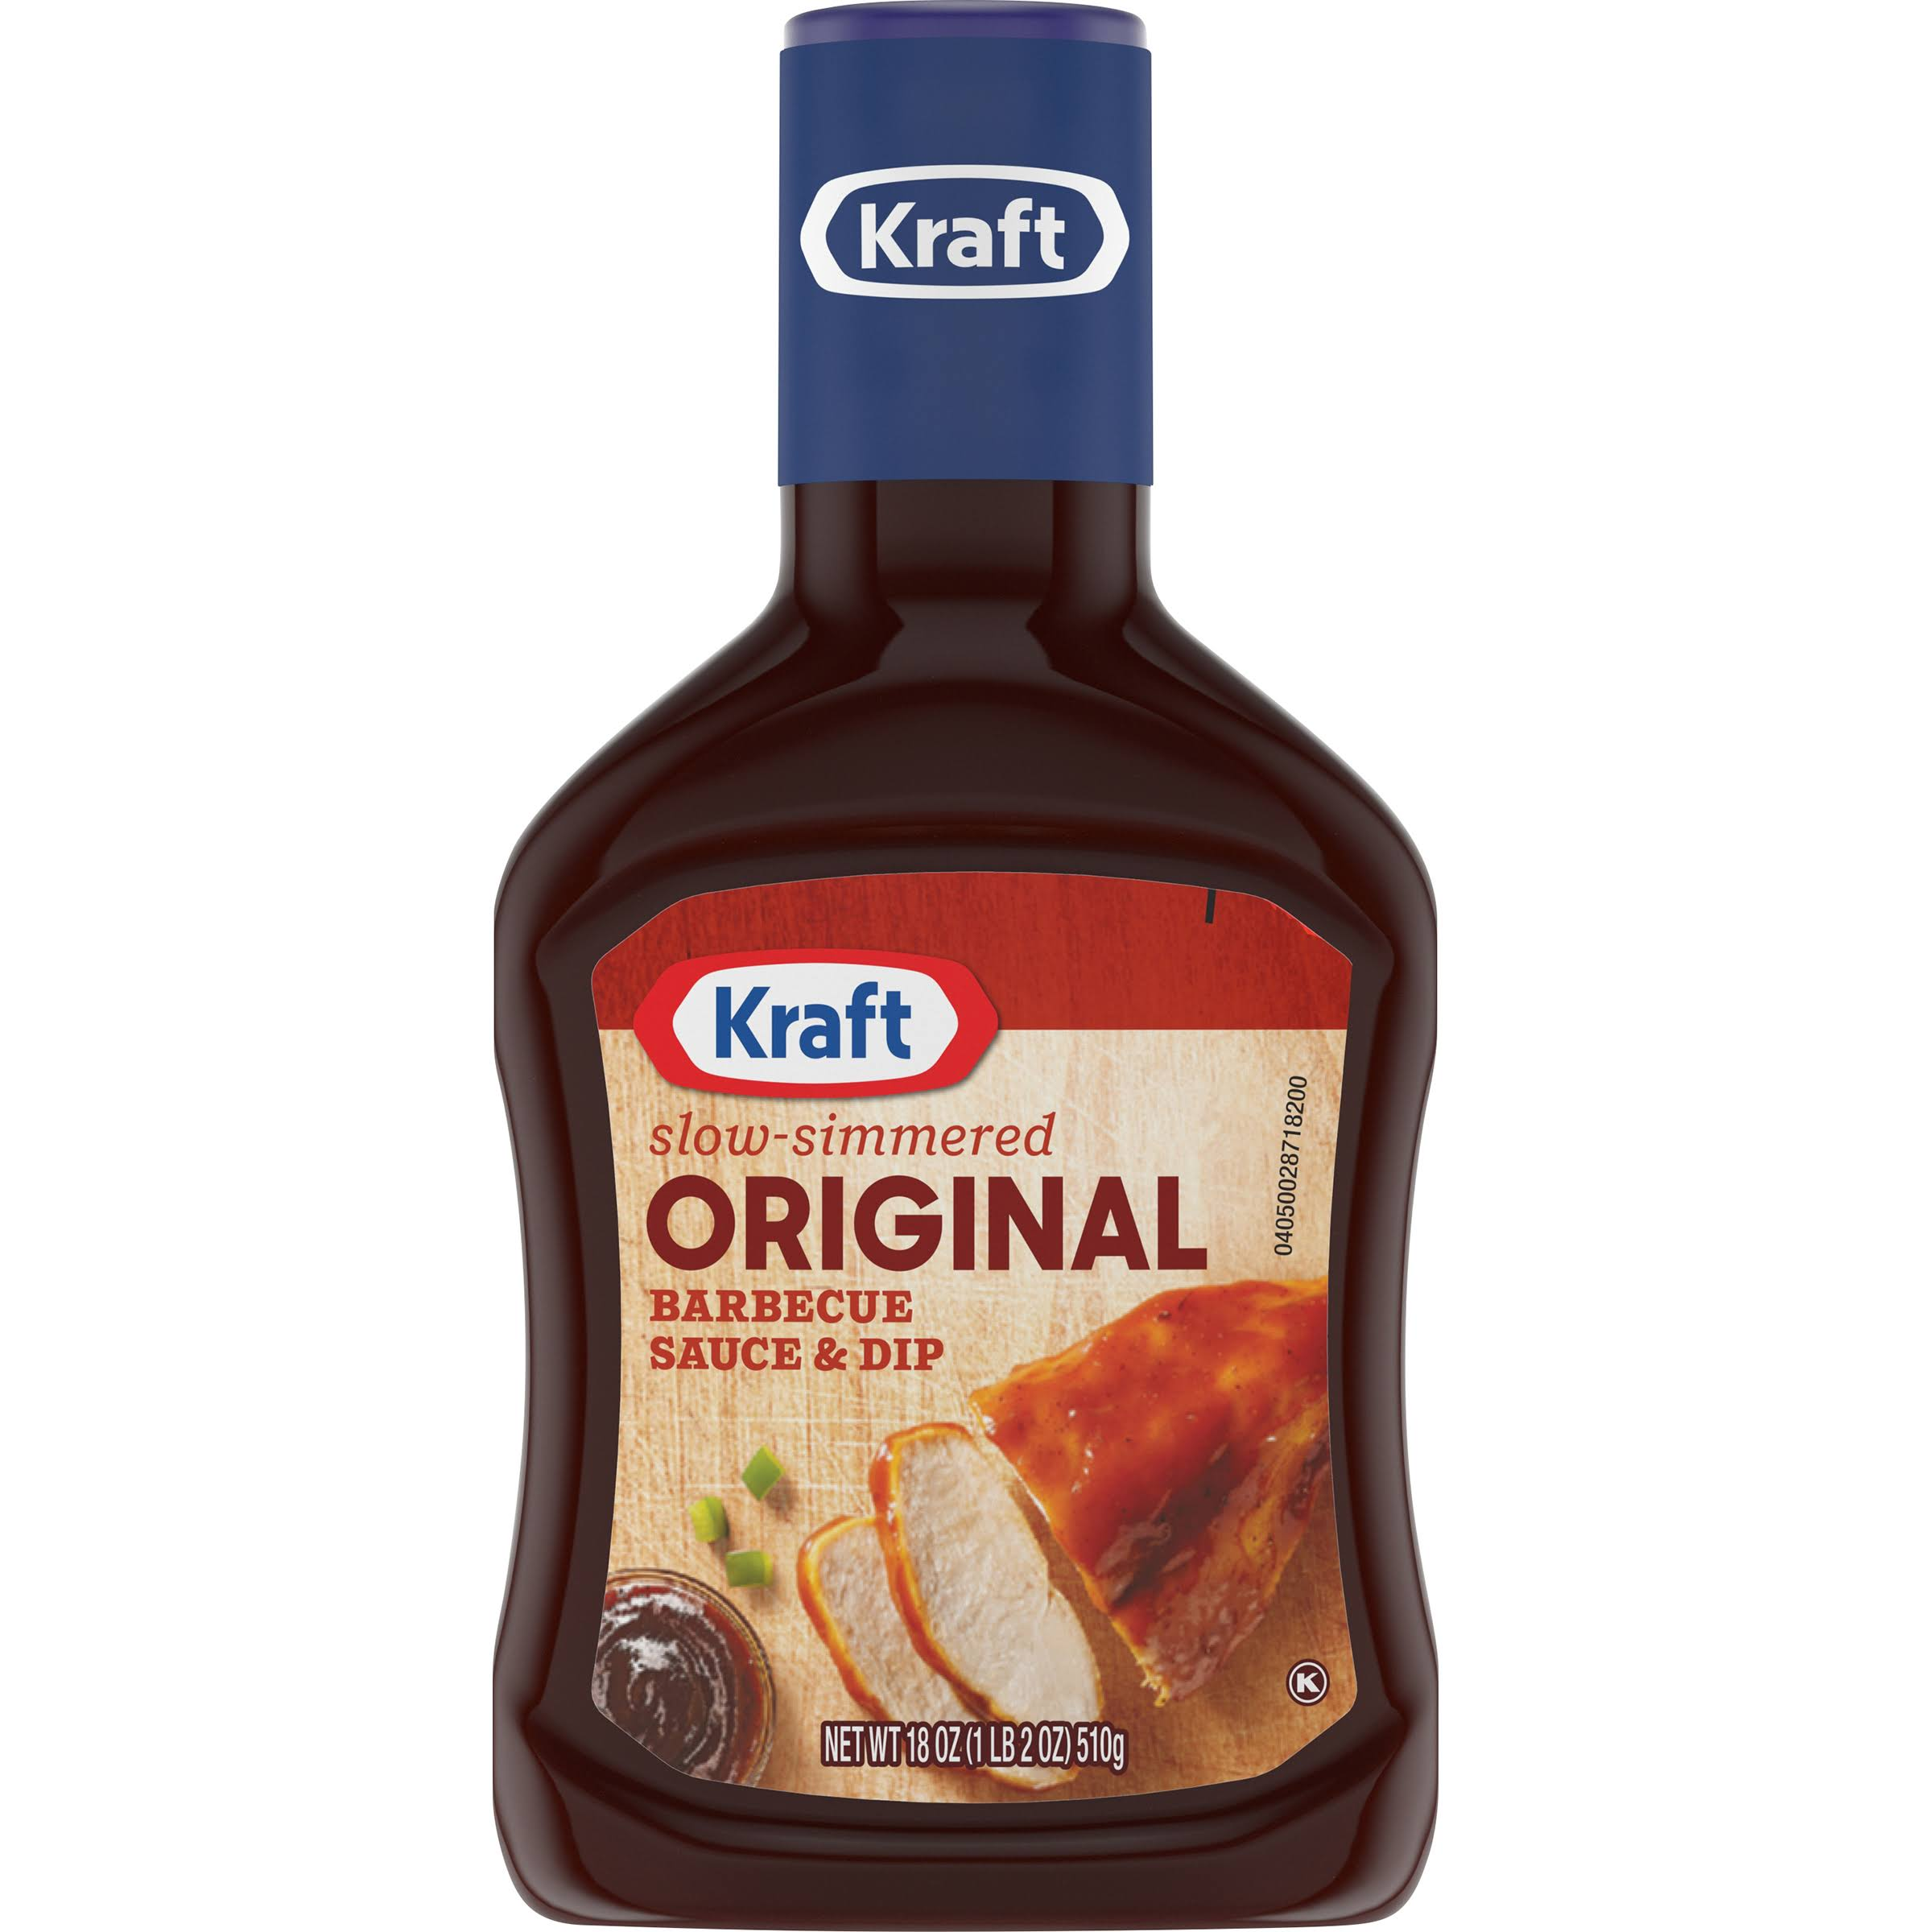 Kraft Barbecue Sauce Slow-Simmered Sauce - Original, 18oz